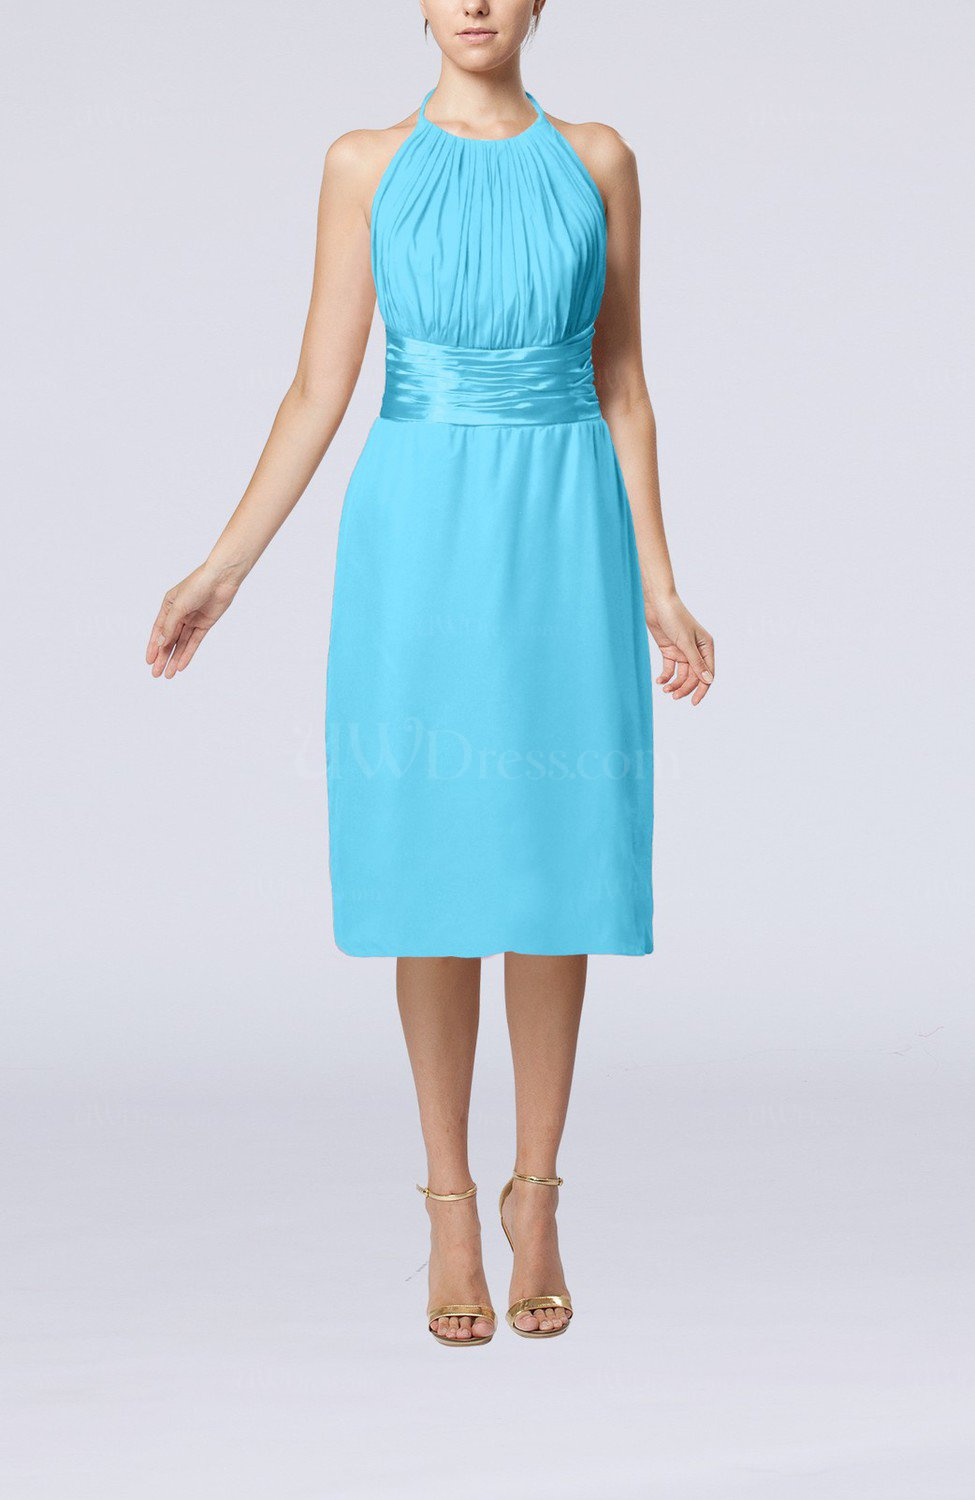 turquoise simple halter backless chiffon knee length